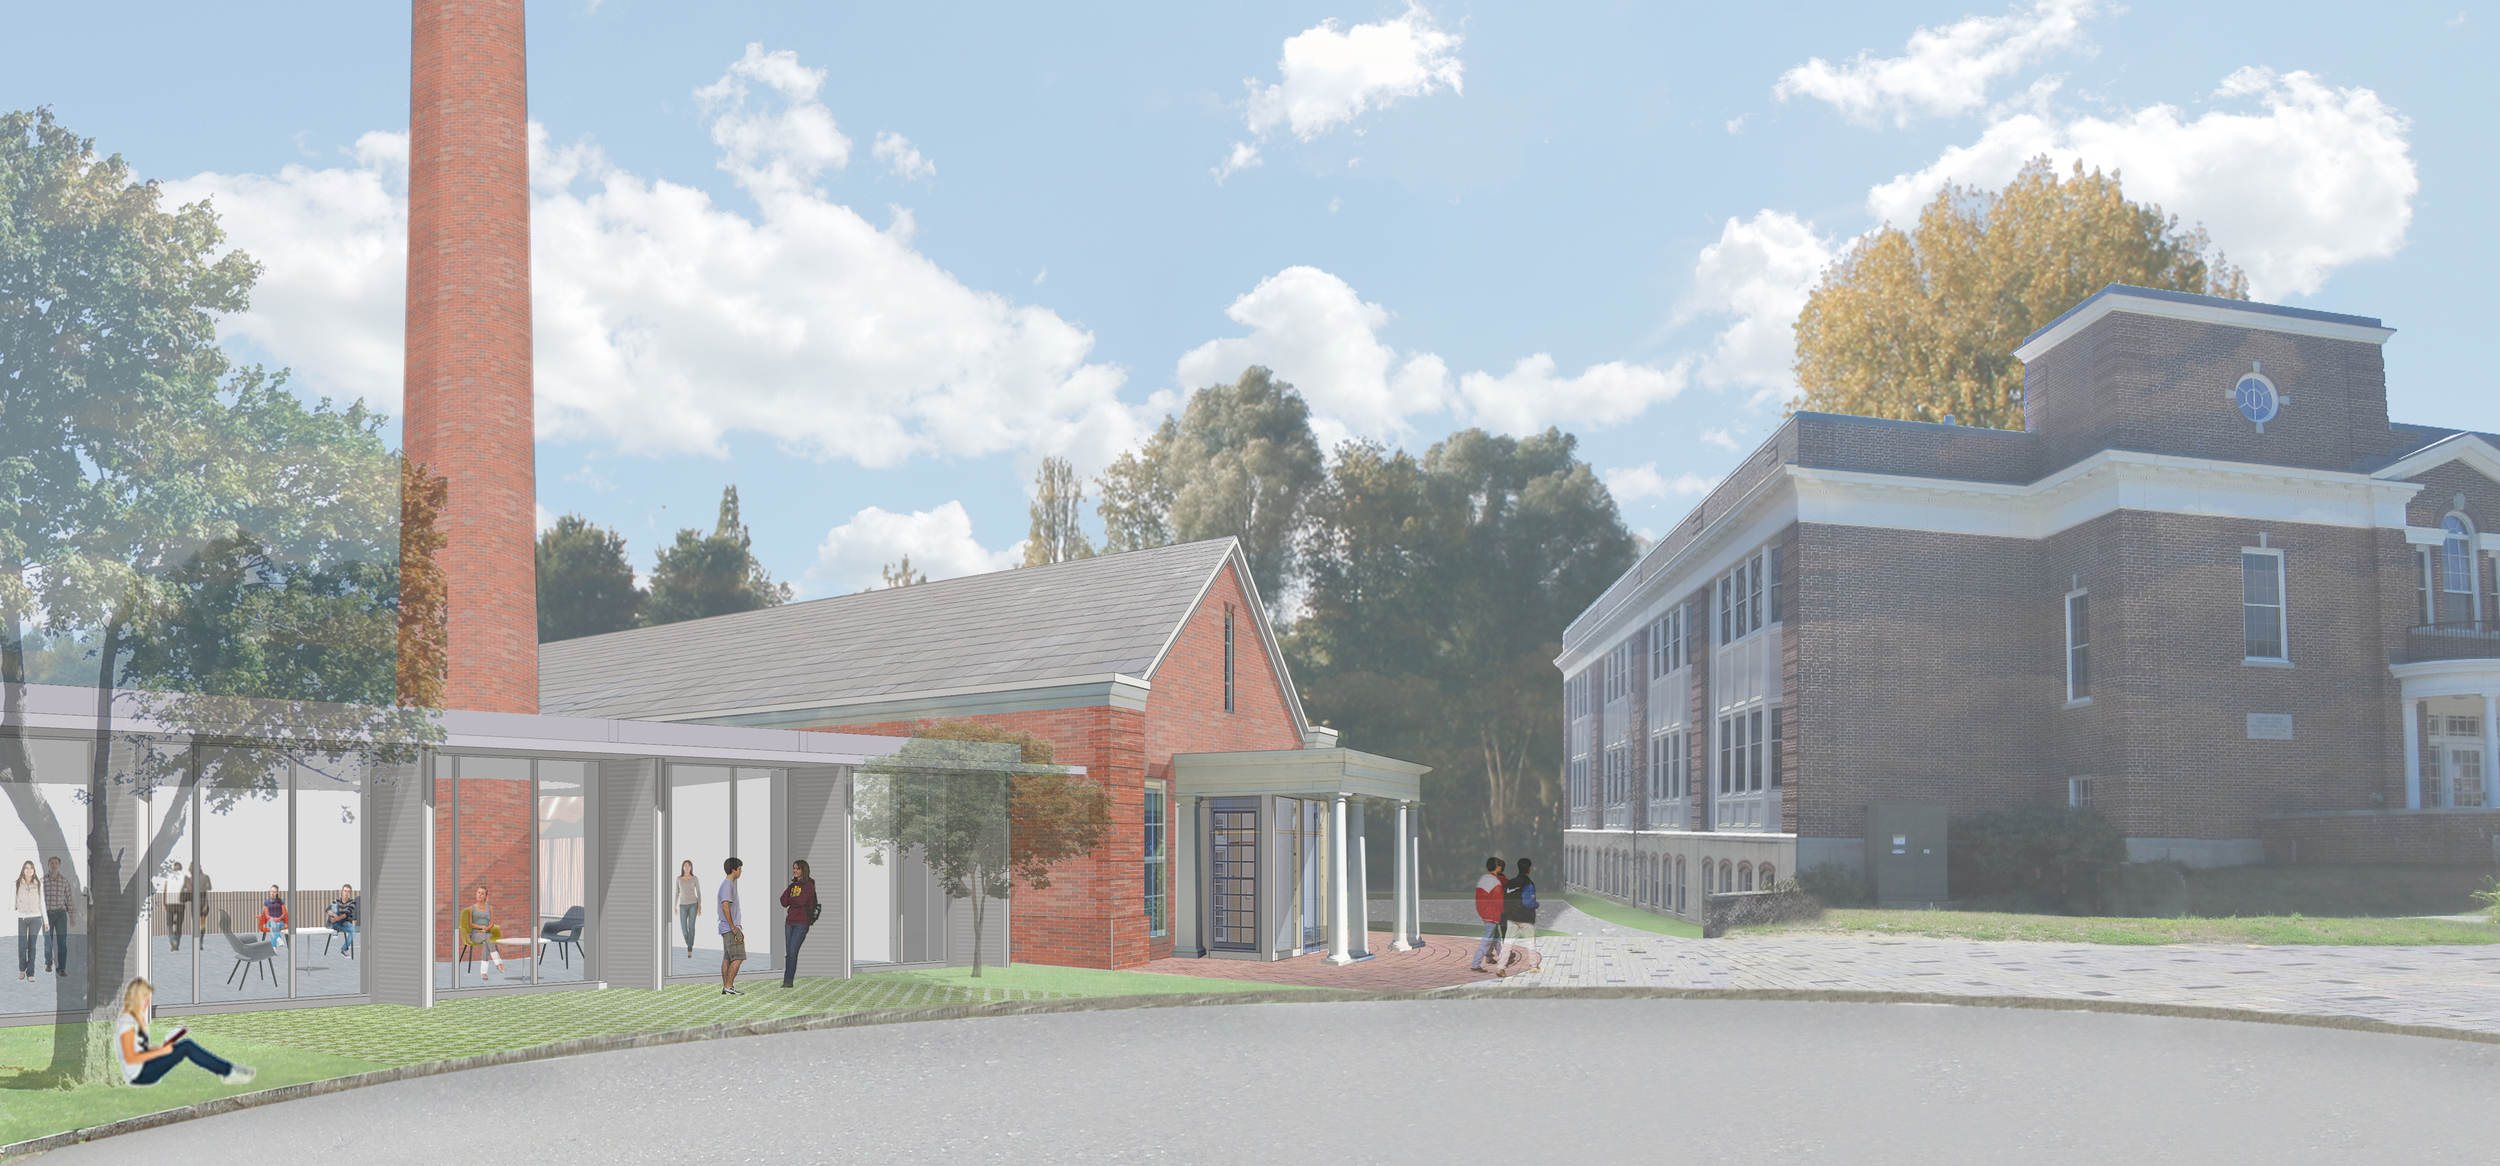 The soon to be Music and Campus Center will be a welcome addition to Middlesex, completing the north side of campus.